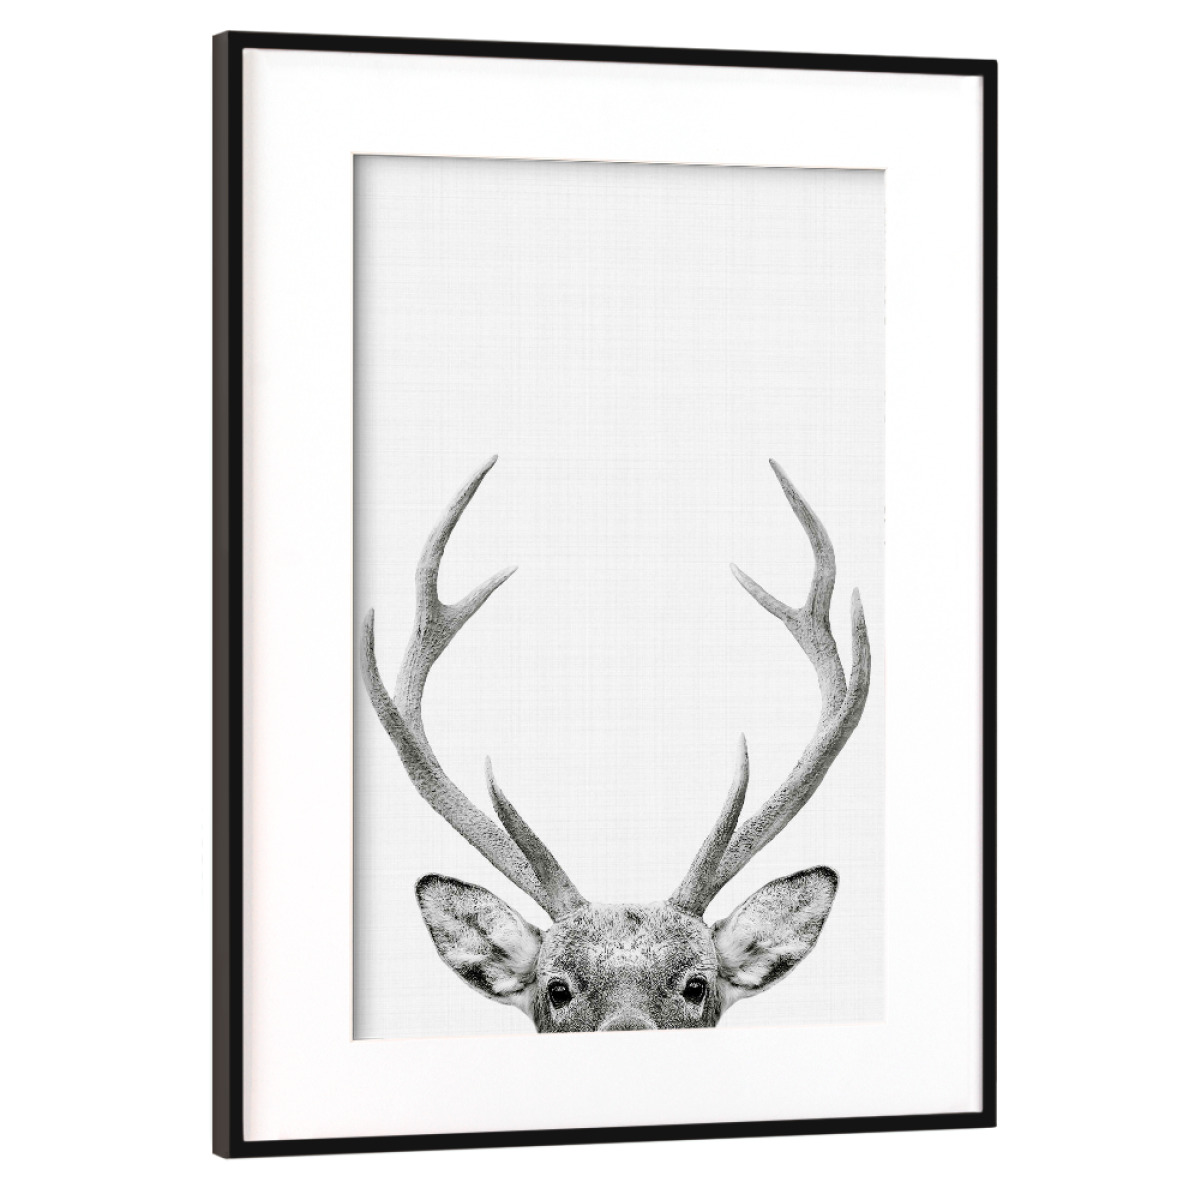 Purchase the Deer Portrait as a Frame at artboxONE